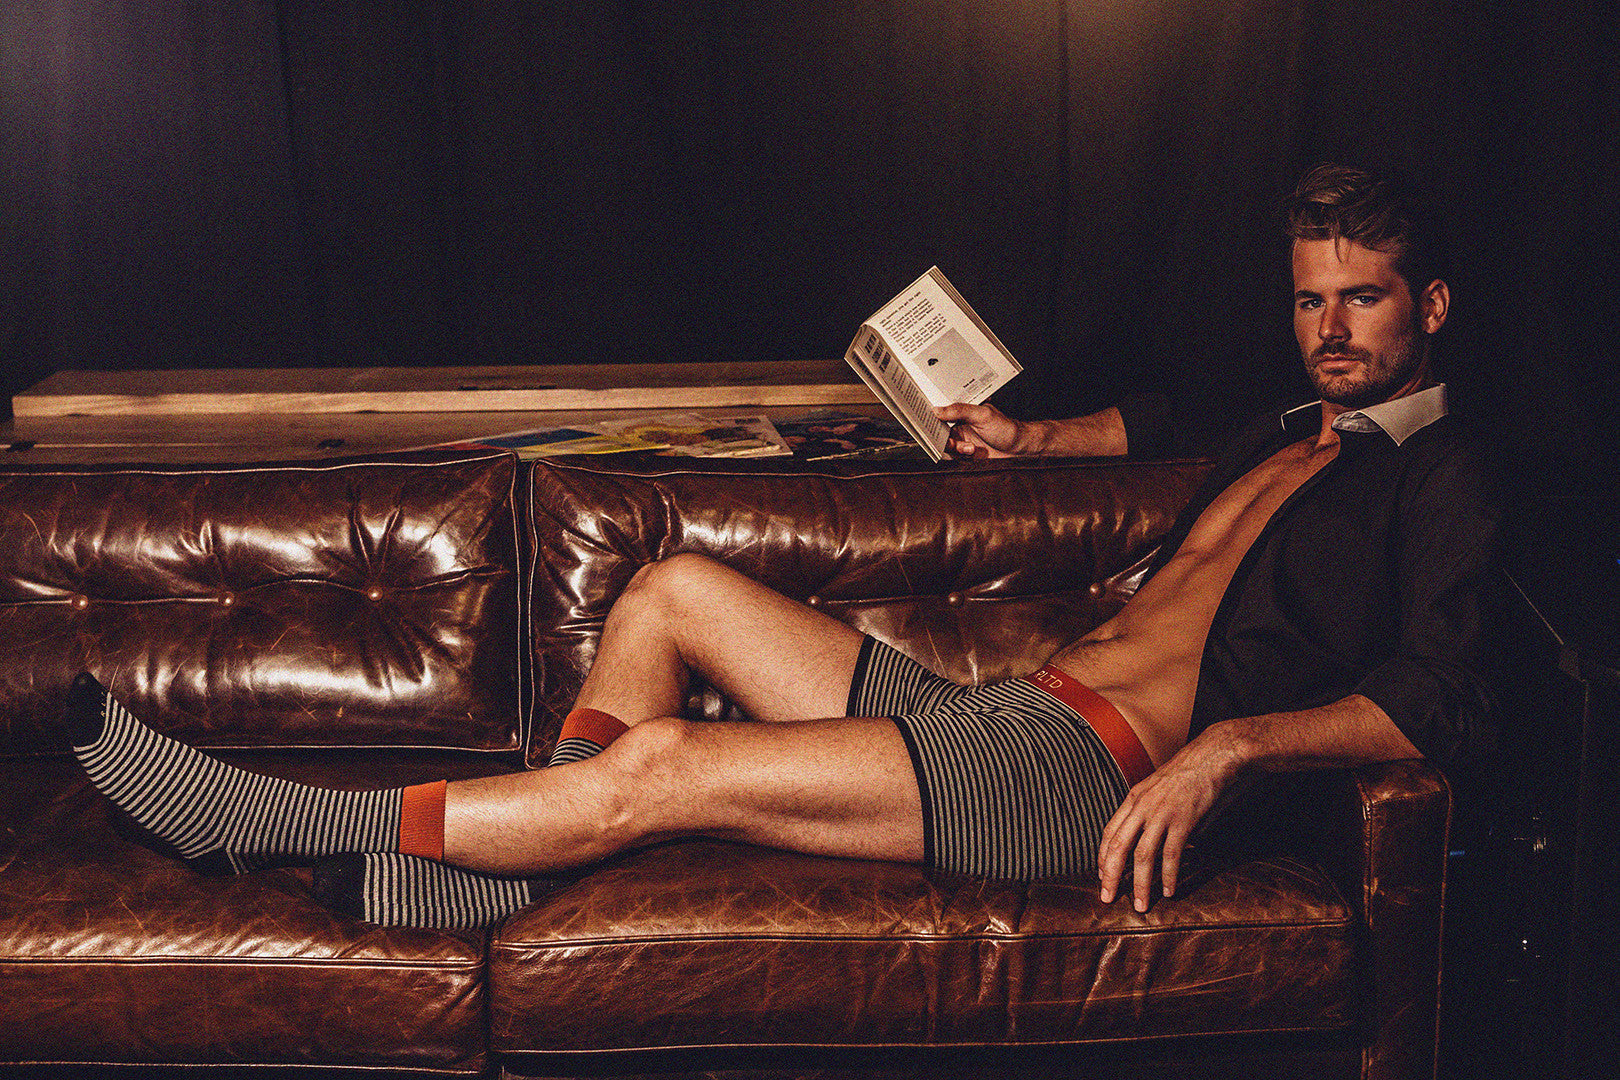 """When Reading A Book"" - Men's Fashion: Dress For The Occasion (Related Garments)"